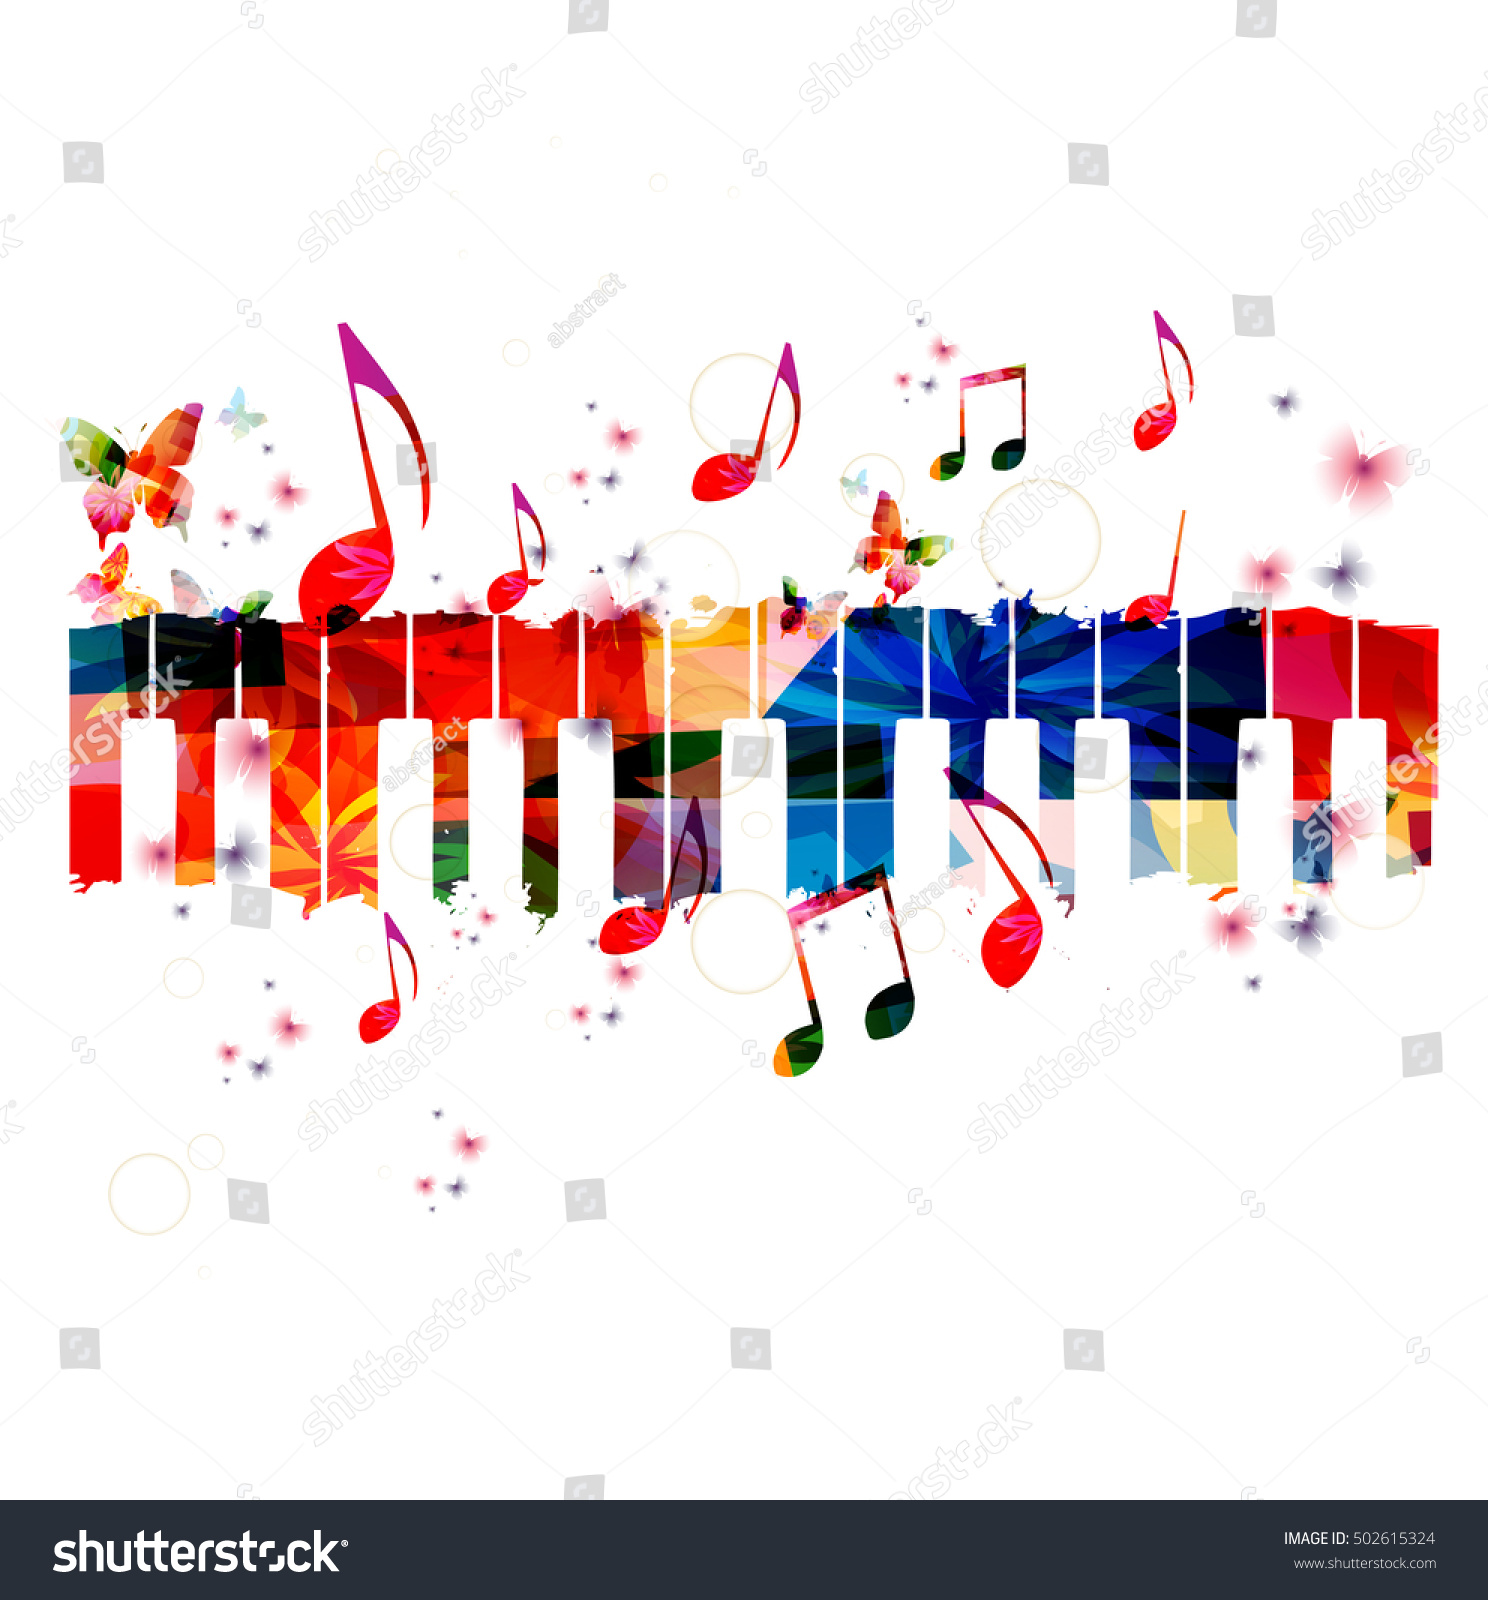 stock-vector-creative-music-style-template-vector-illustration-colorful-piano-keys-music-instrument-background-502615324.jpg